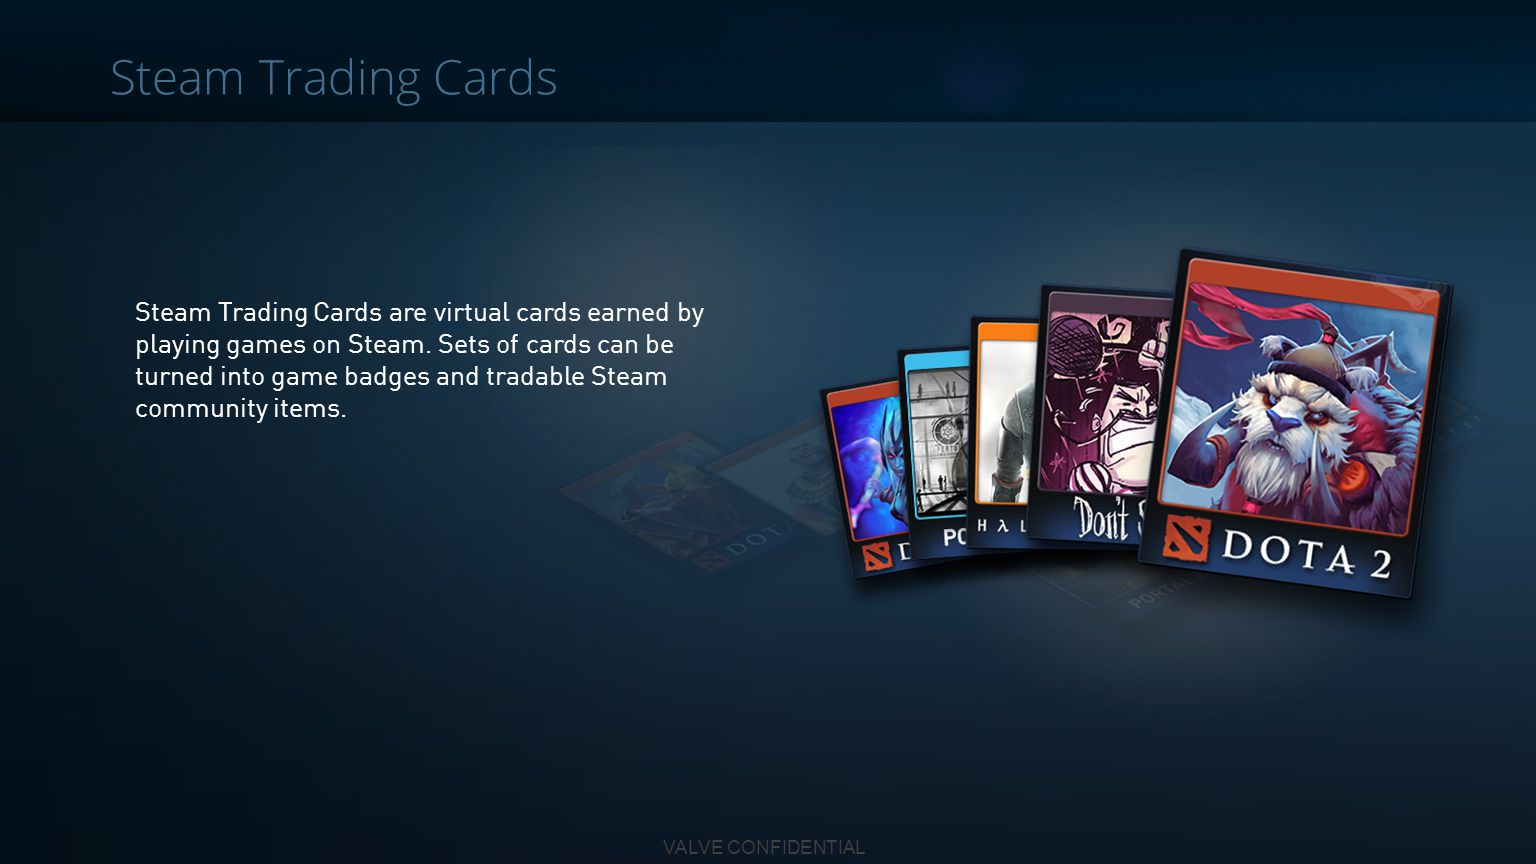 VALVE CONFIDENTIAL Steam Trading Cards are virtual cards earned by playing games on Steam. Sets of cards can be turned into game badges and tradable S